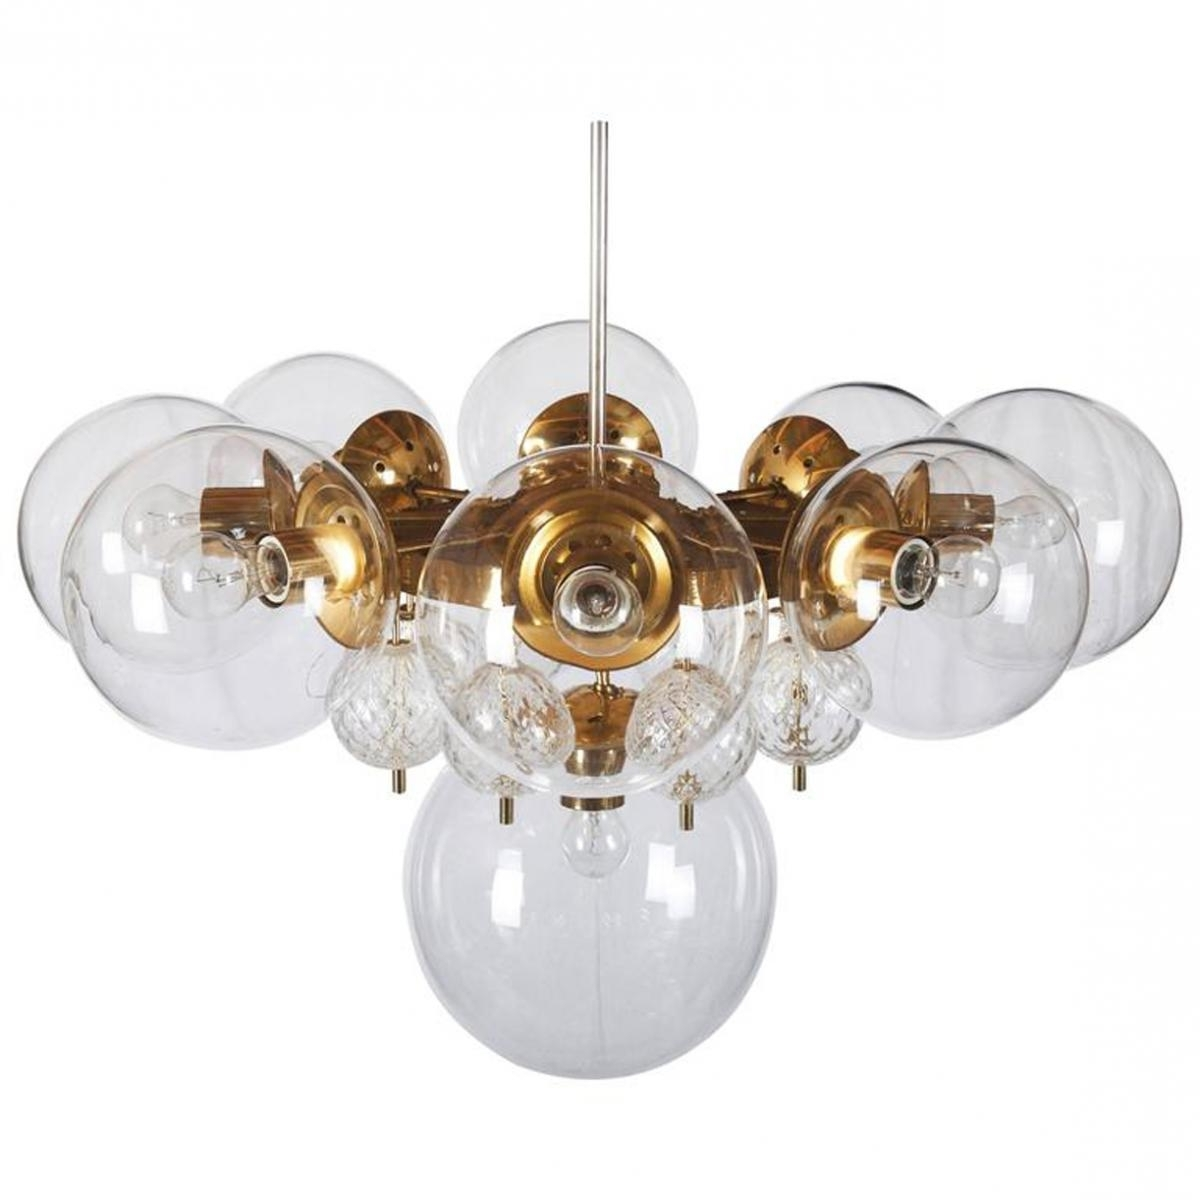 Large Brass Chandelier With Crystal Globes From Kamenicky Senov In Preferred Large Brass Chandelier (View 8 of 20)